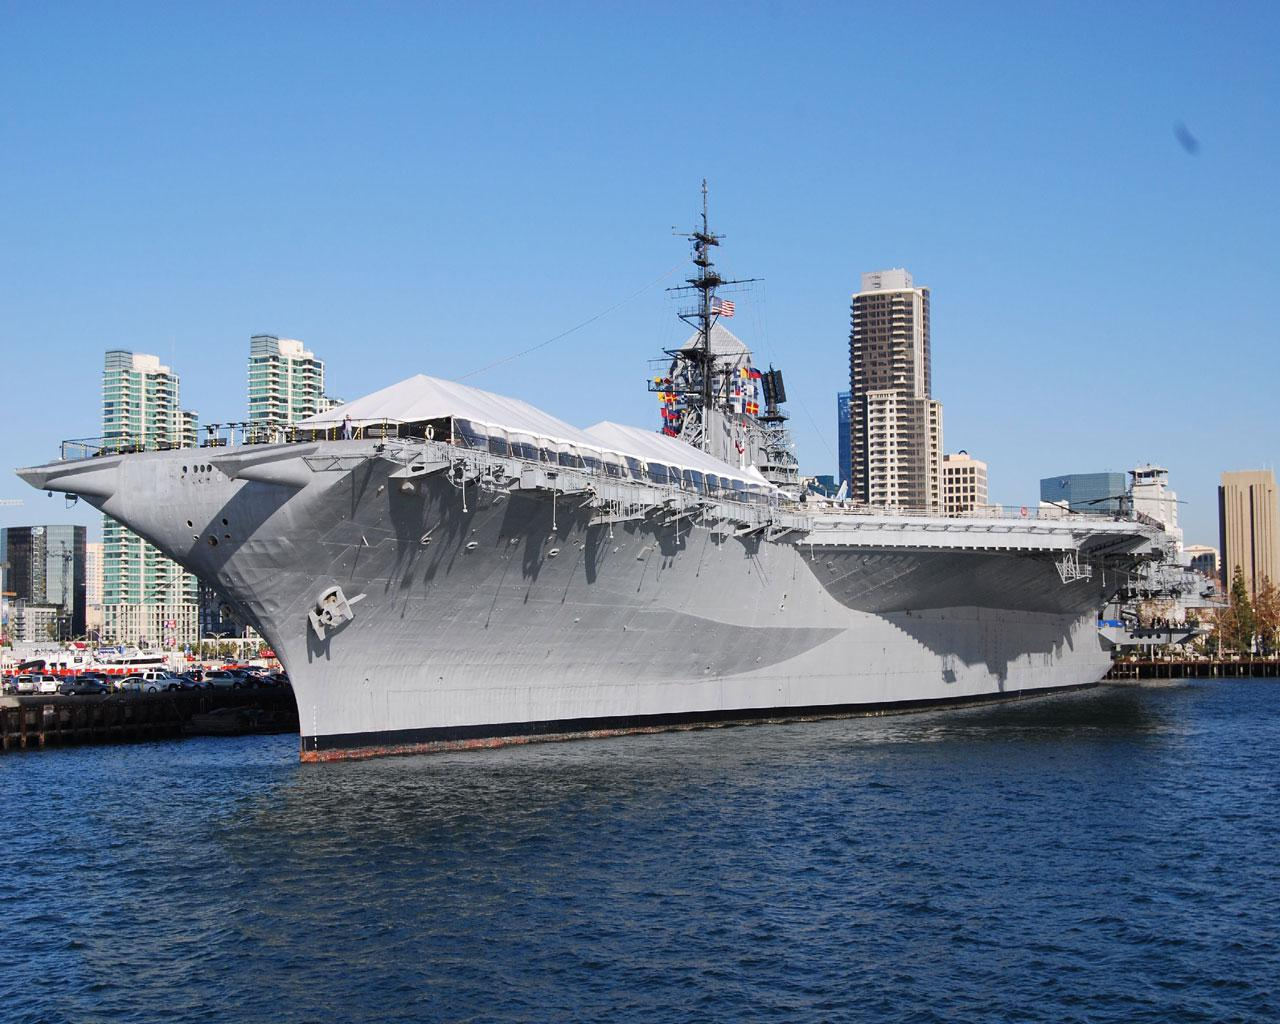 san diego uss midway 1280x1024 wallpaper 3 more san diego wallpapers 1280x1024